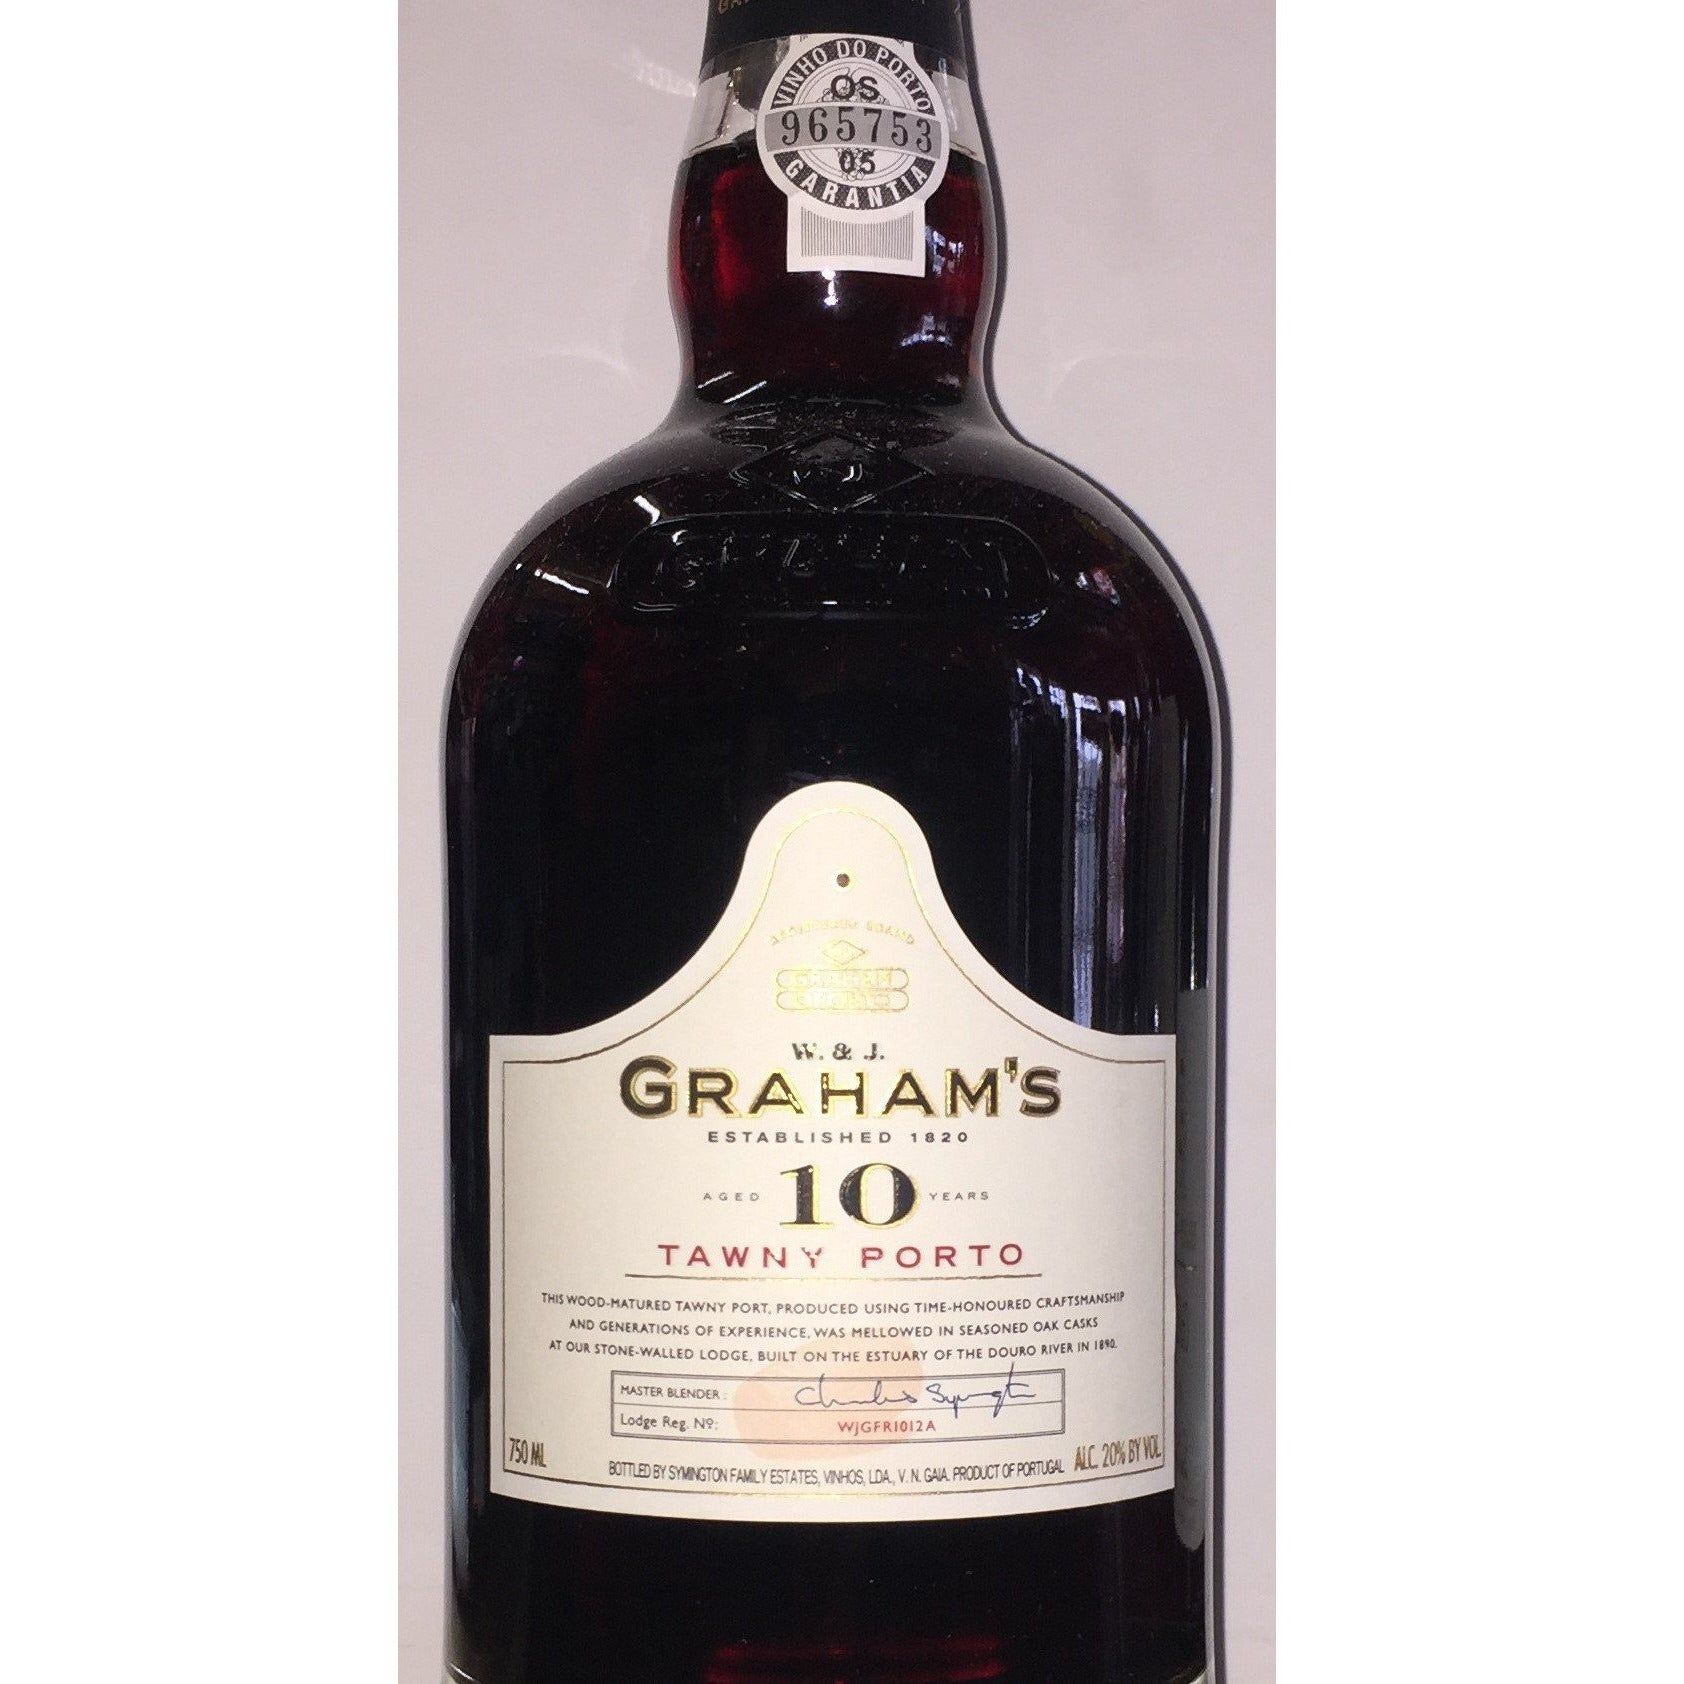 W. & J. Grahams Tawny Porto 10 Year Port Wine